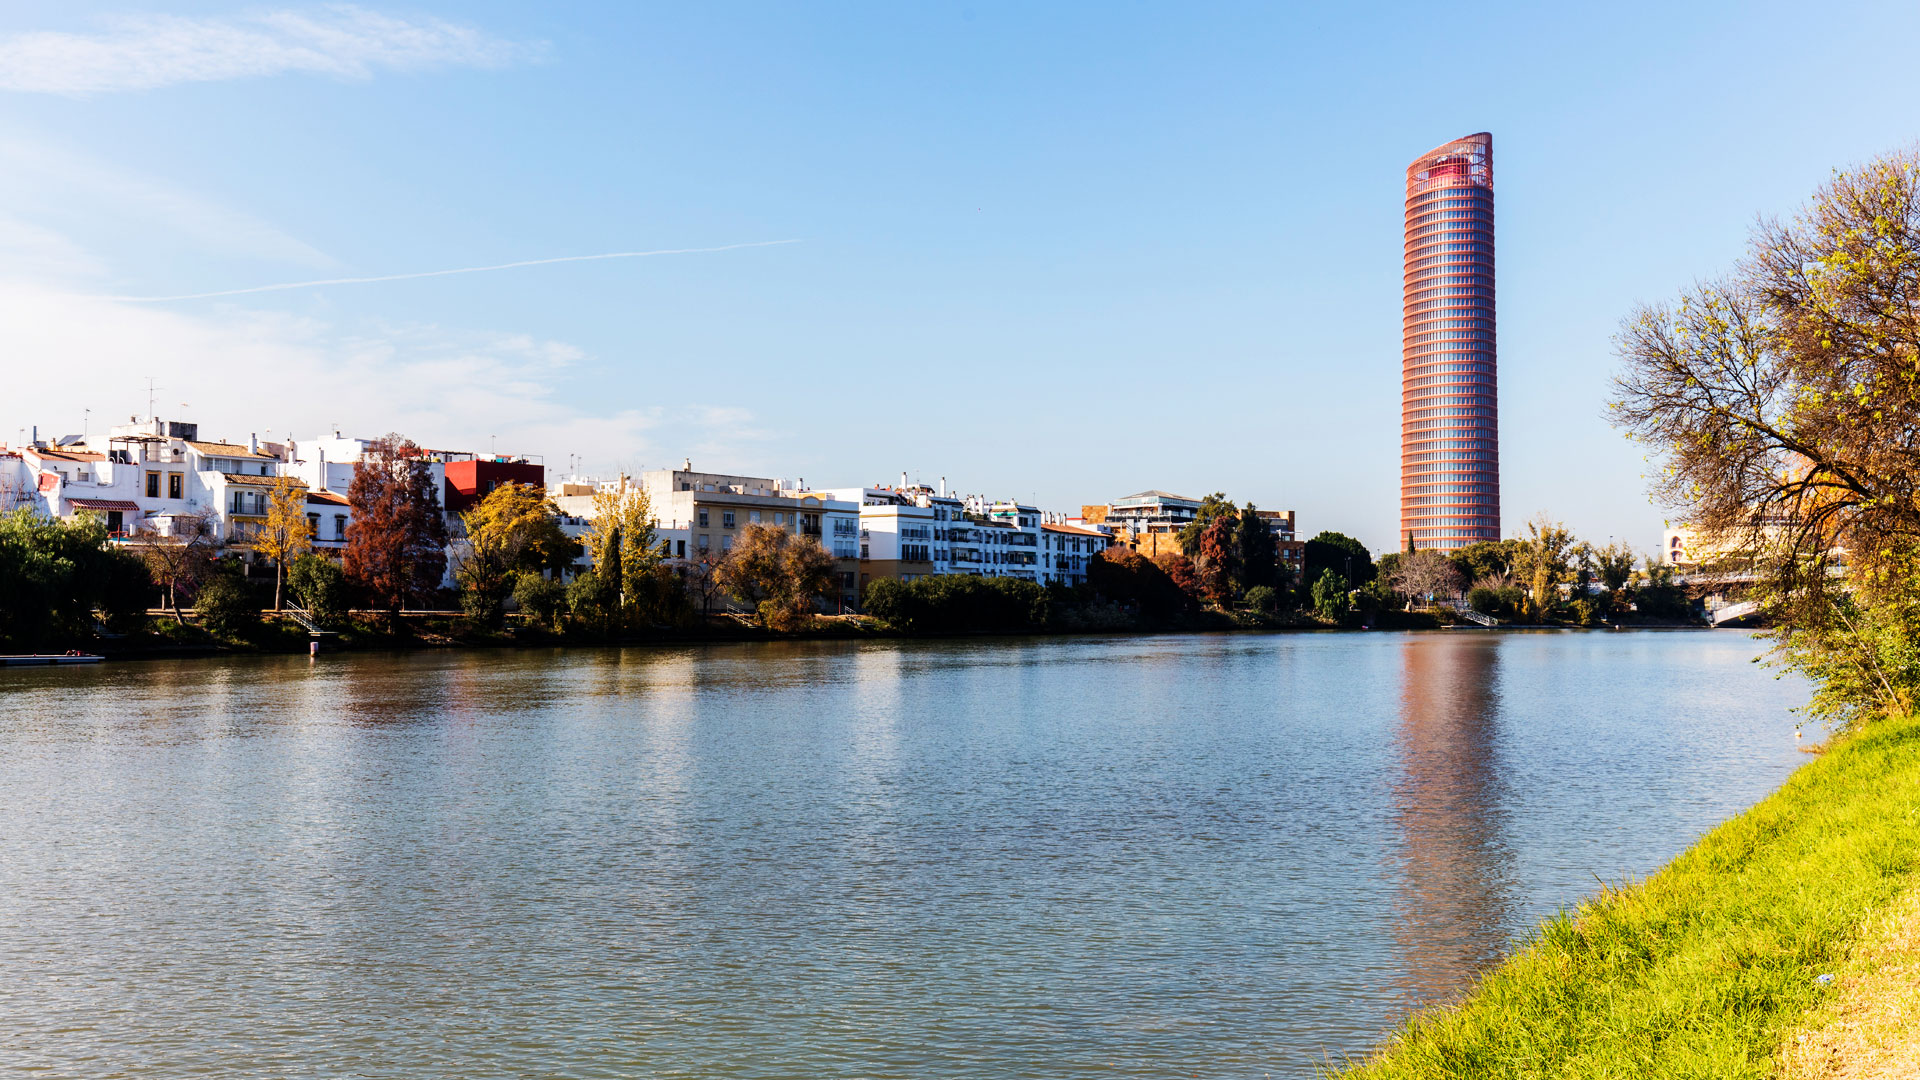 ideltec-projects-projects-torre-sevilla-ayesa-pic1